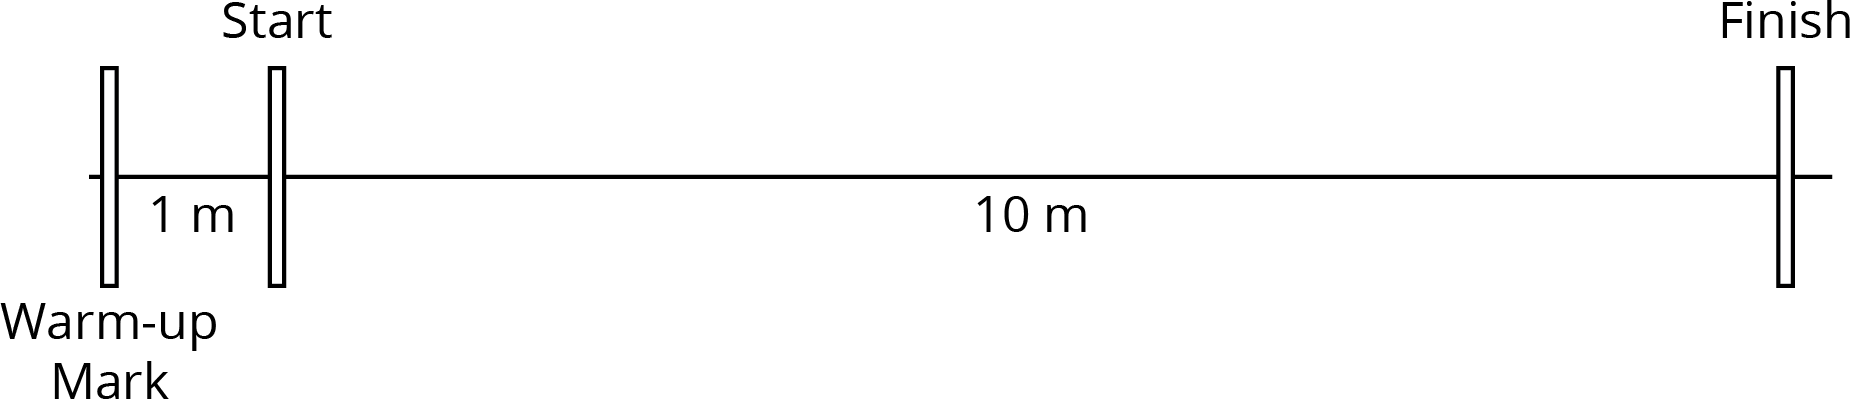 """A diagram of a line with three markings. The first mark is labeled """"Warm-up Mark"""", the second mark is labeled """"Start"""", and the third mark is labeled """"Finish"""". The distance between the first and second mark is labeled 1m. The distance between the second and third mark is labeled 10m."""